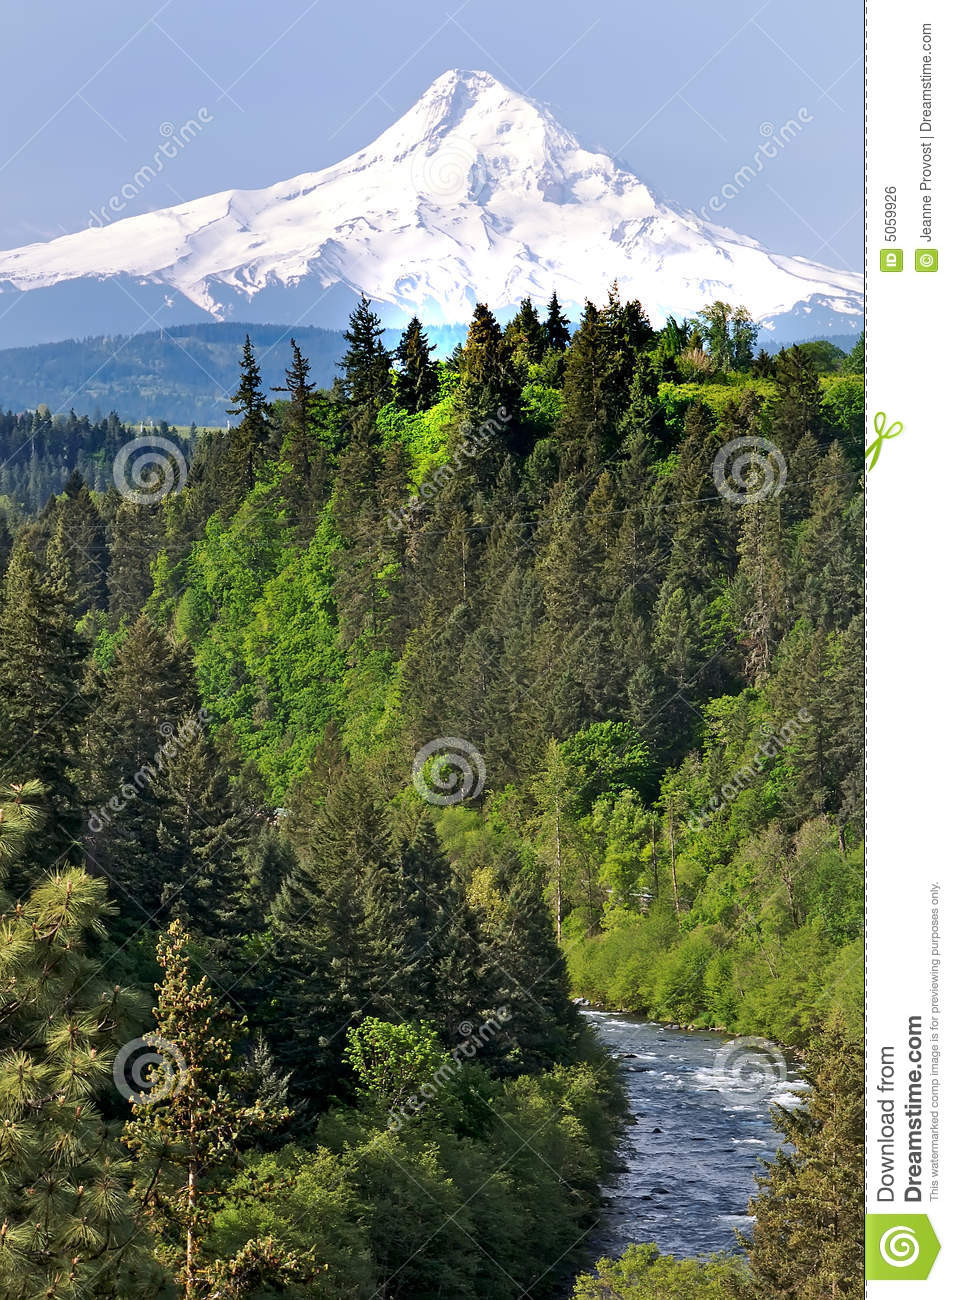 Mount Hood with River in Foreground